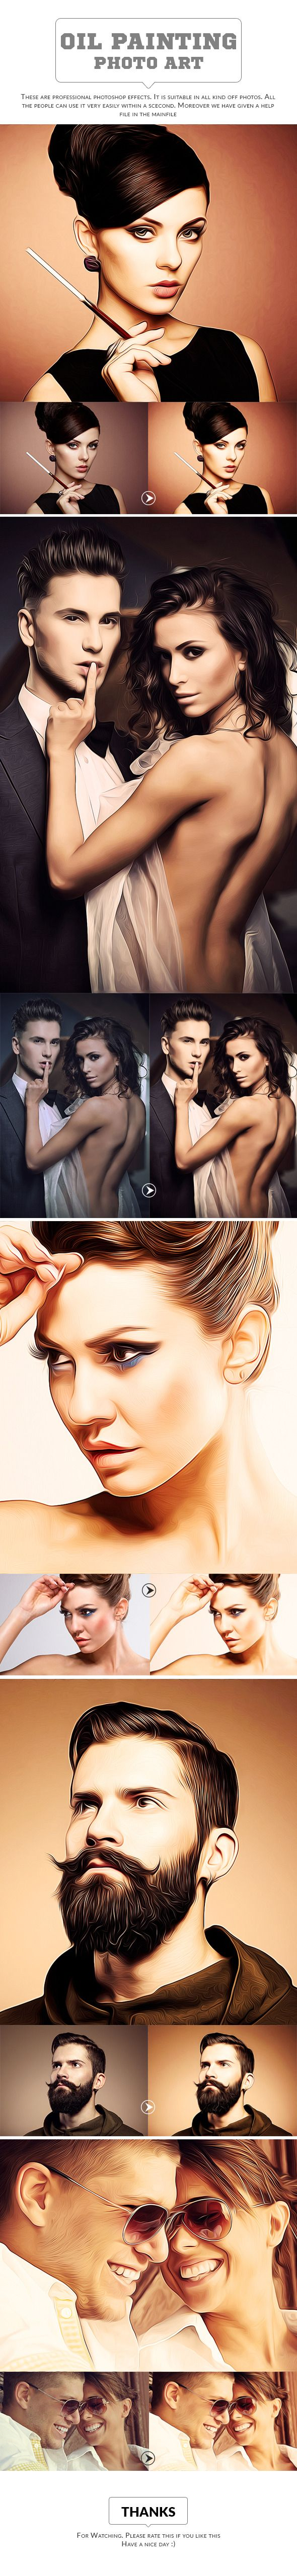 Oil Painting Art - Photo Effects Actions #photoshop #action